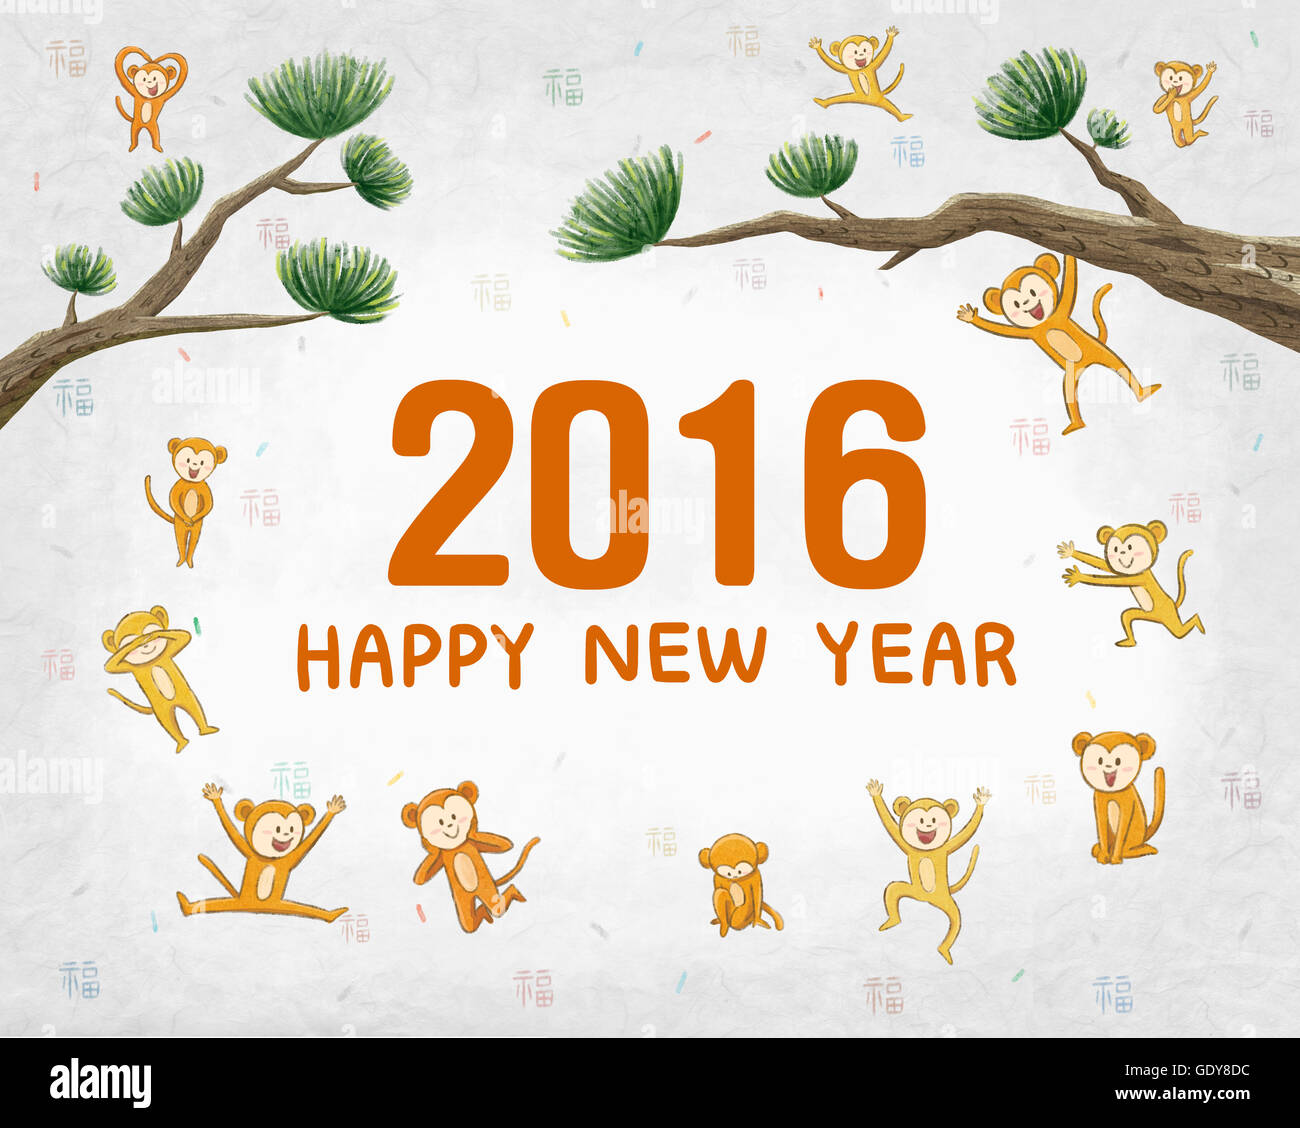 New Years Greeting Card Monkeys Stock Photos & New Years Greeting ...